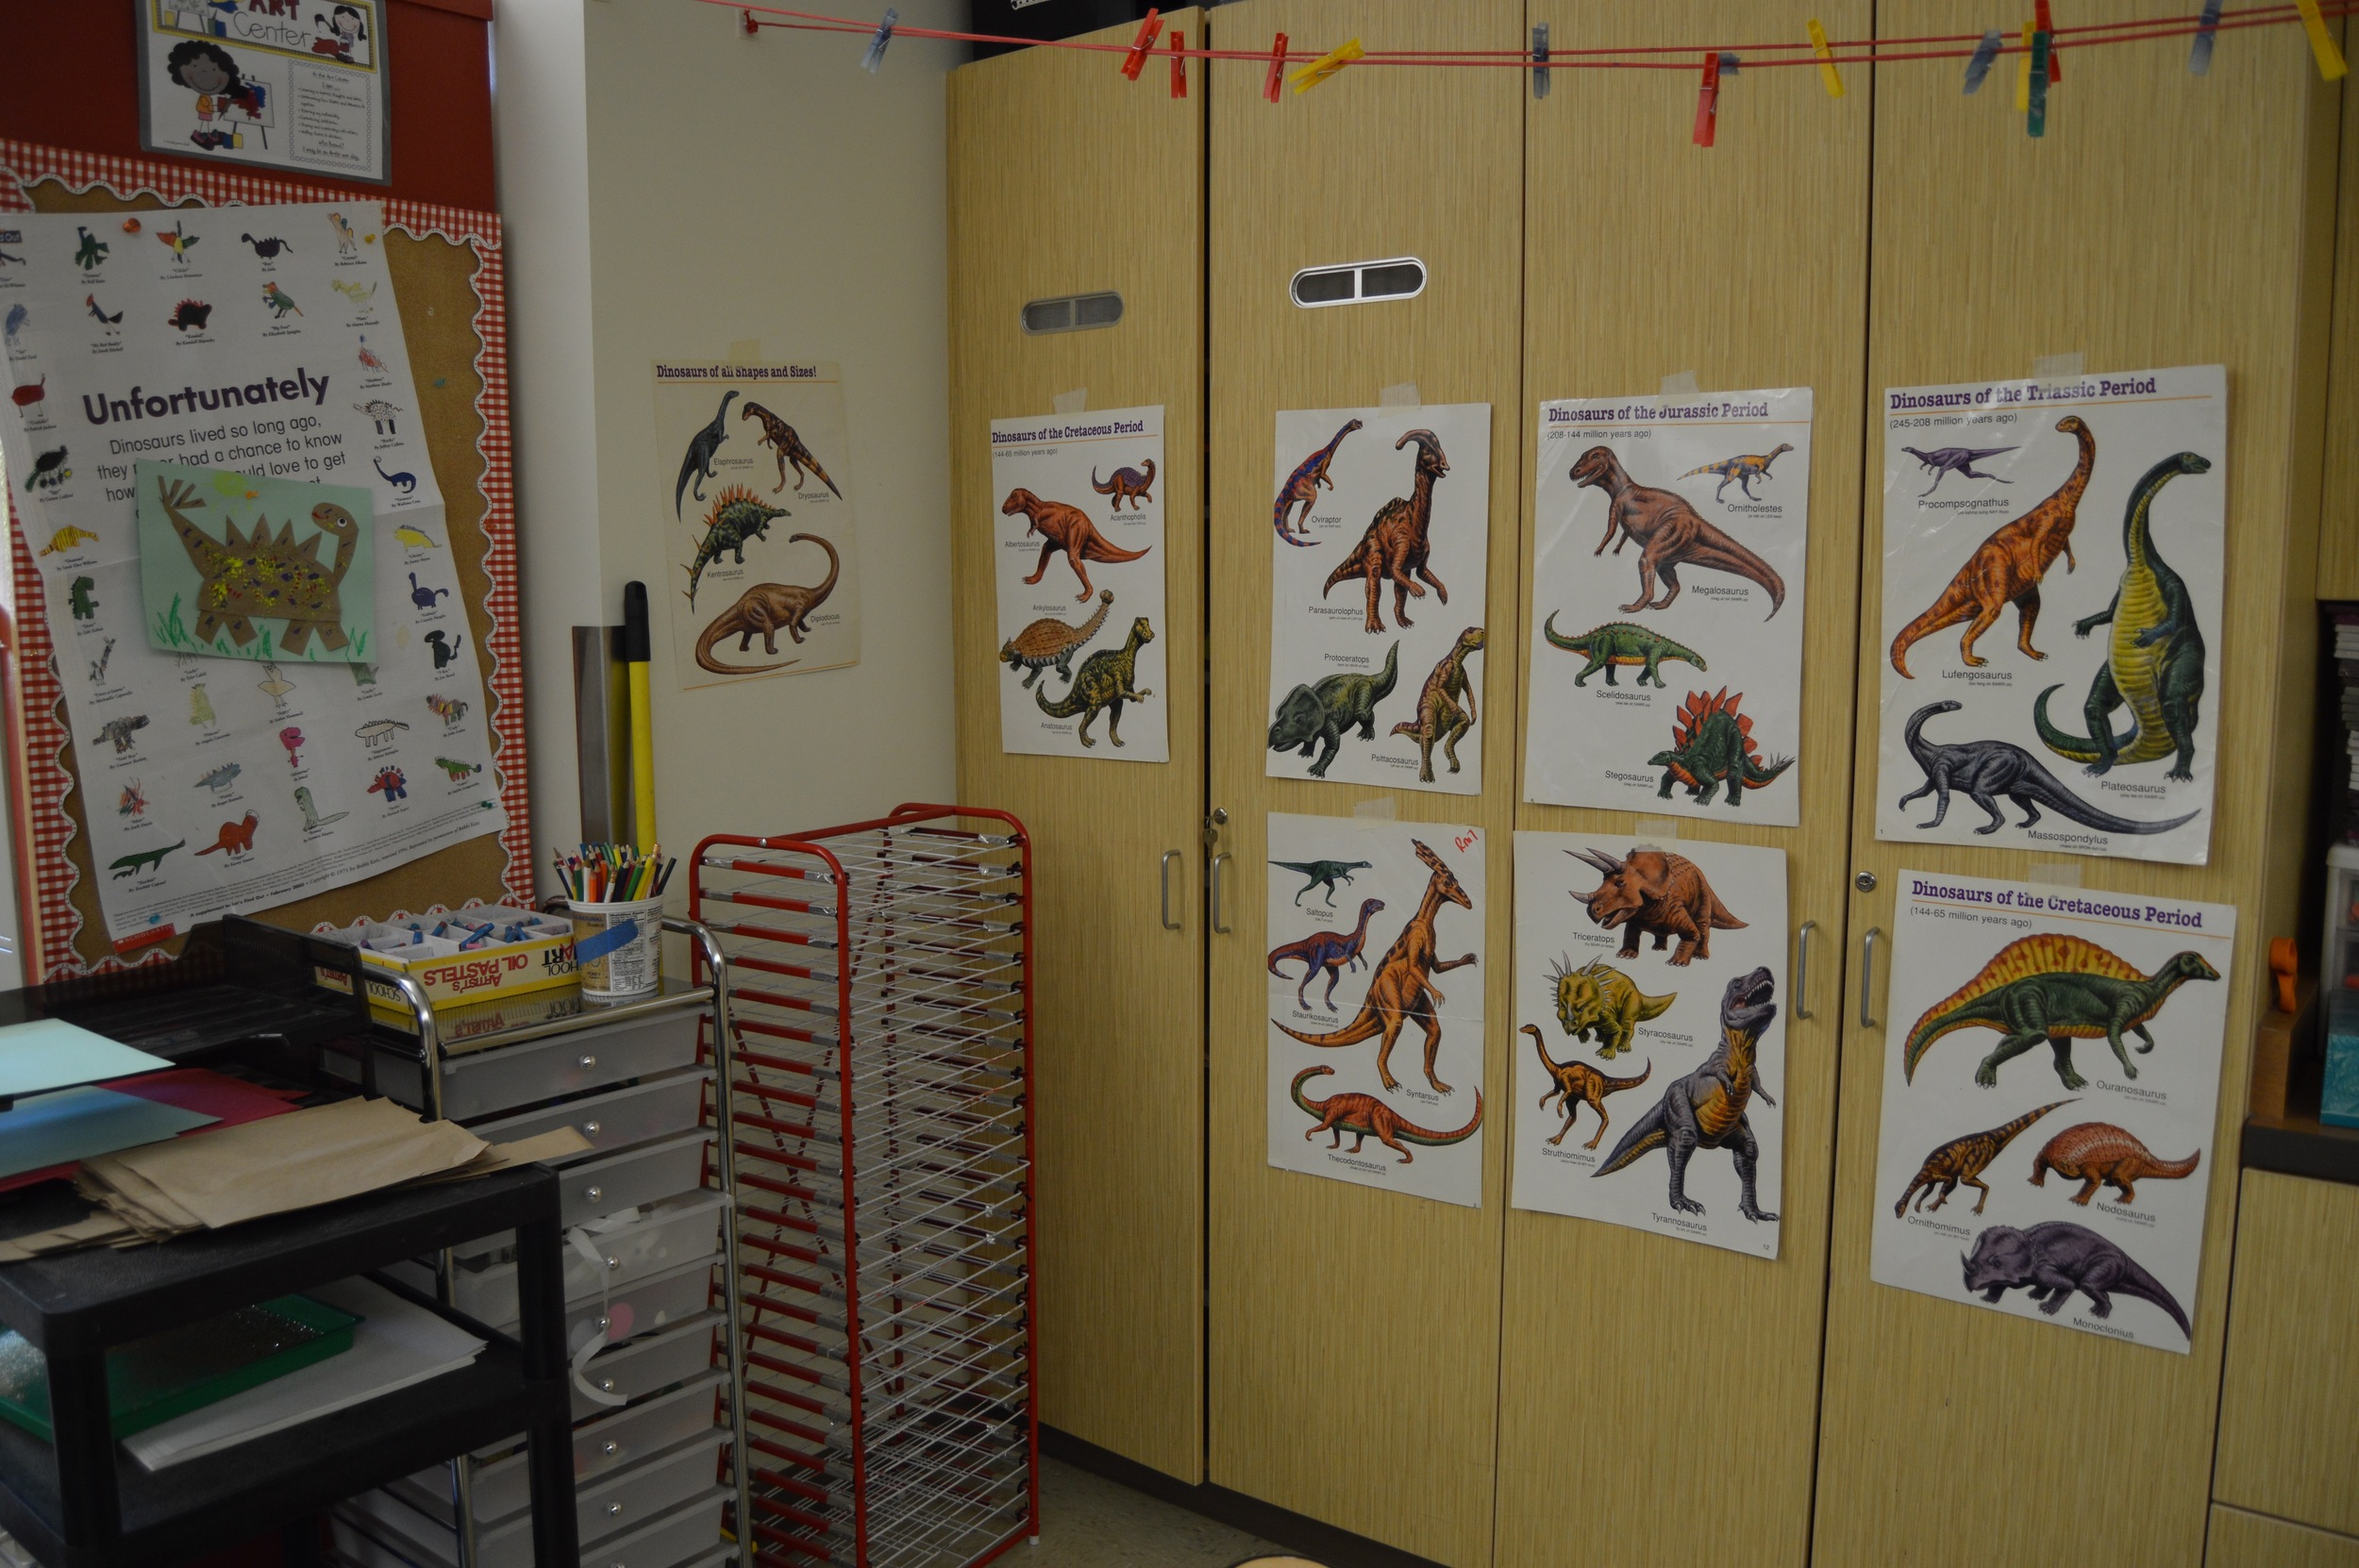 The Art Center is filled with dinosaur art samples.